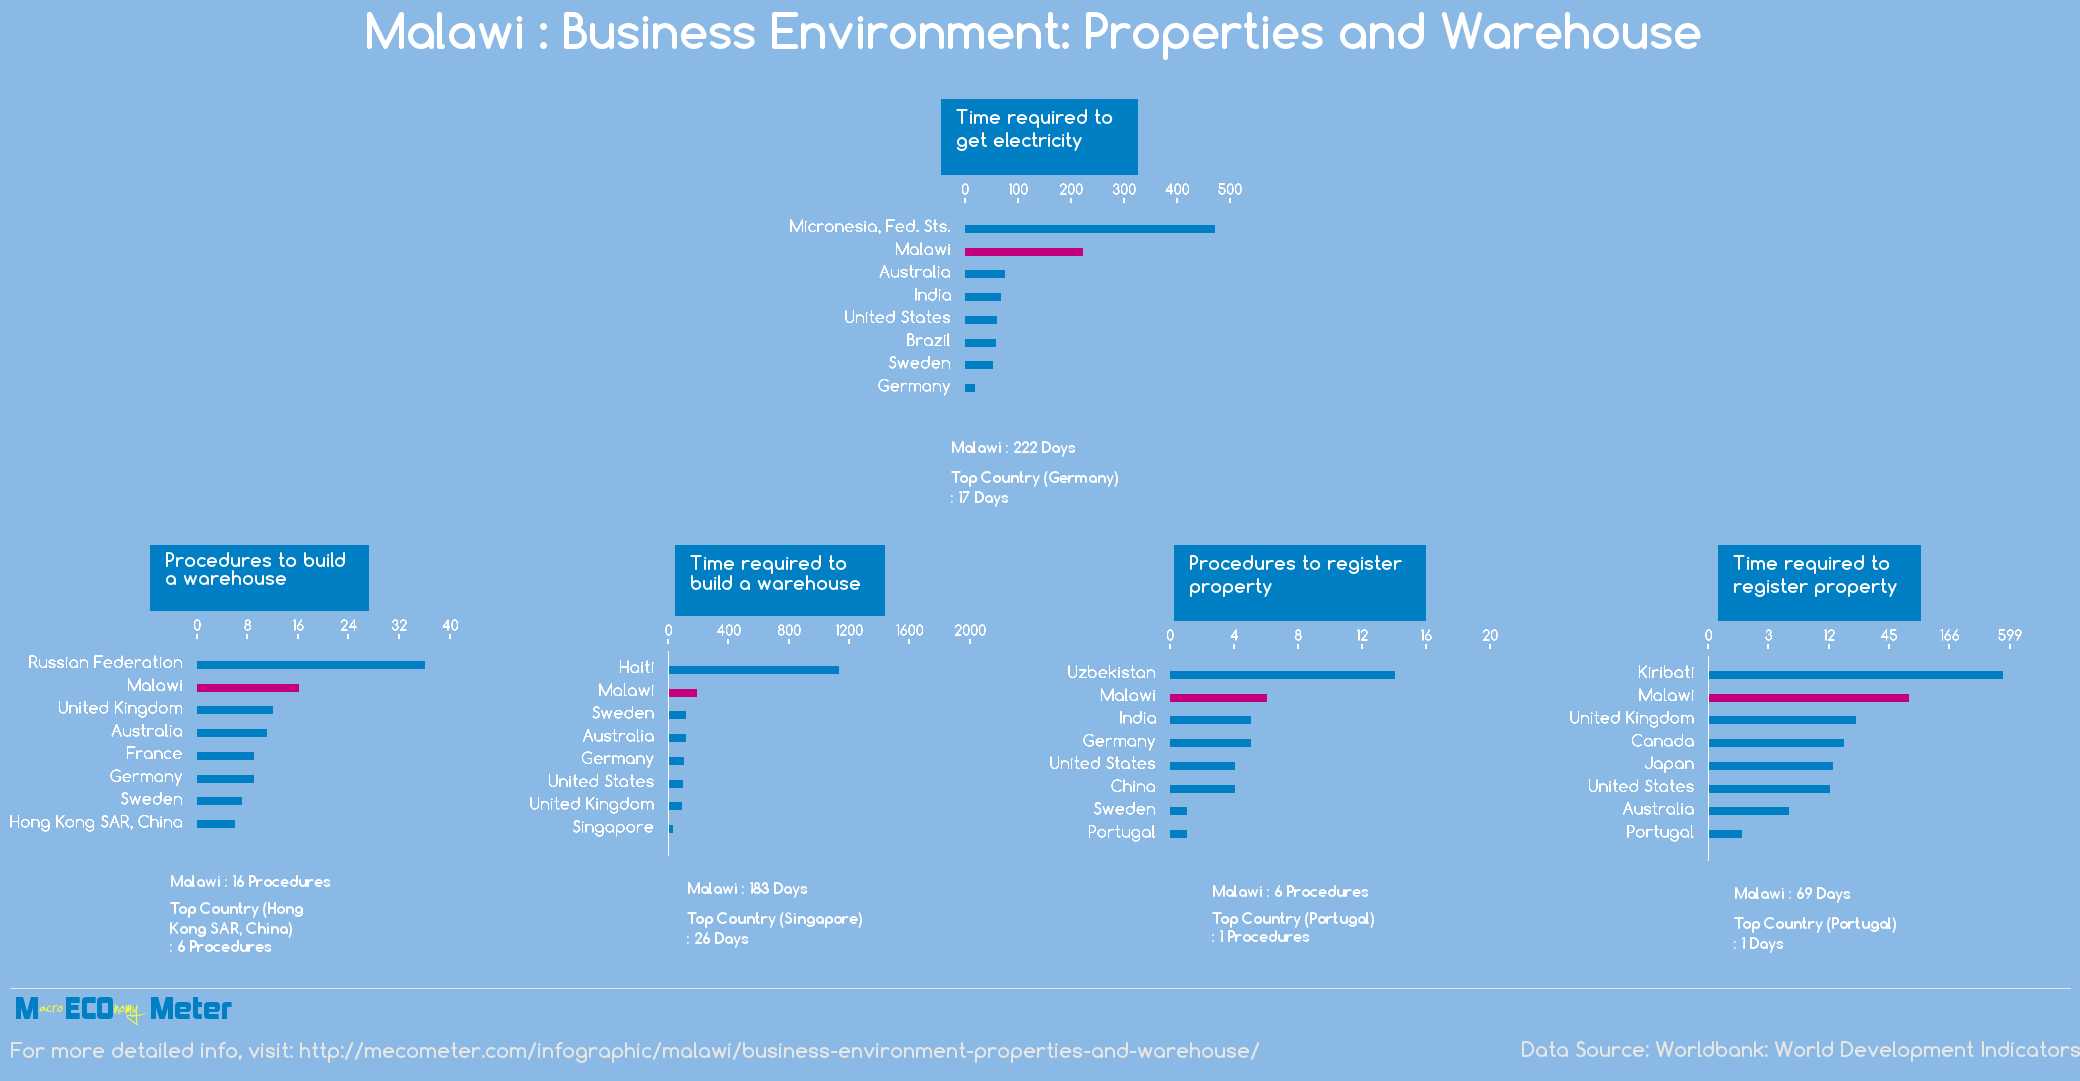 Malawi : Business Environment: Properties and Warehouse